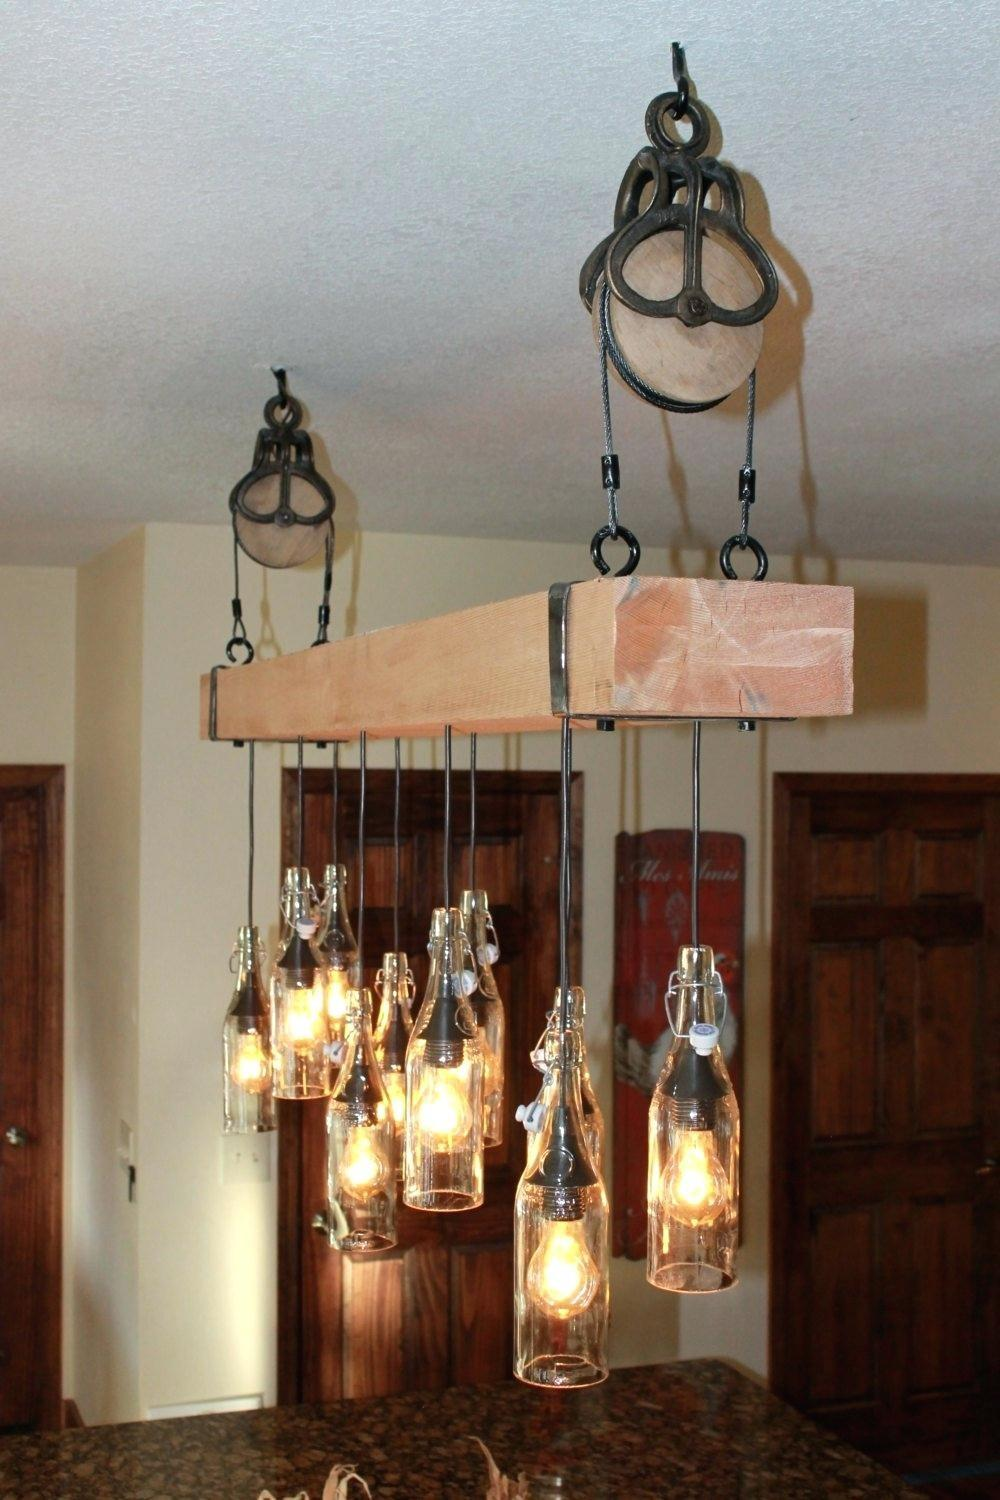 Rustic Lighting Rural Countryside Vintage Pendant Lights